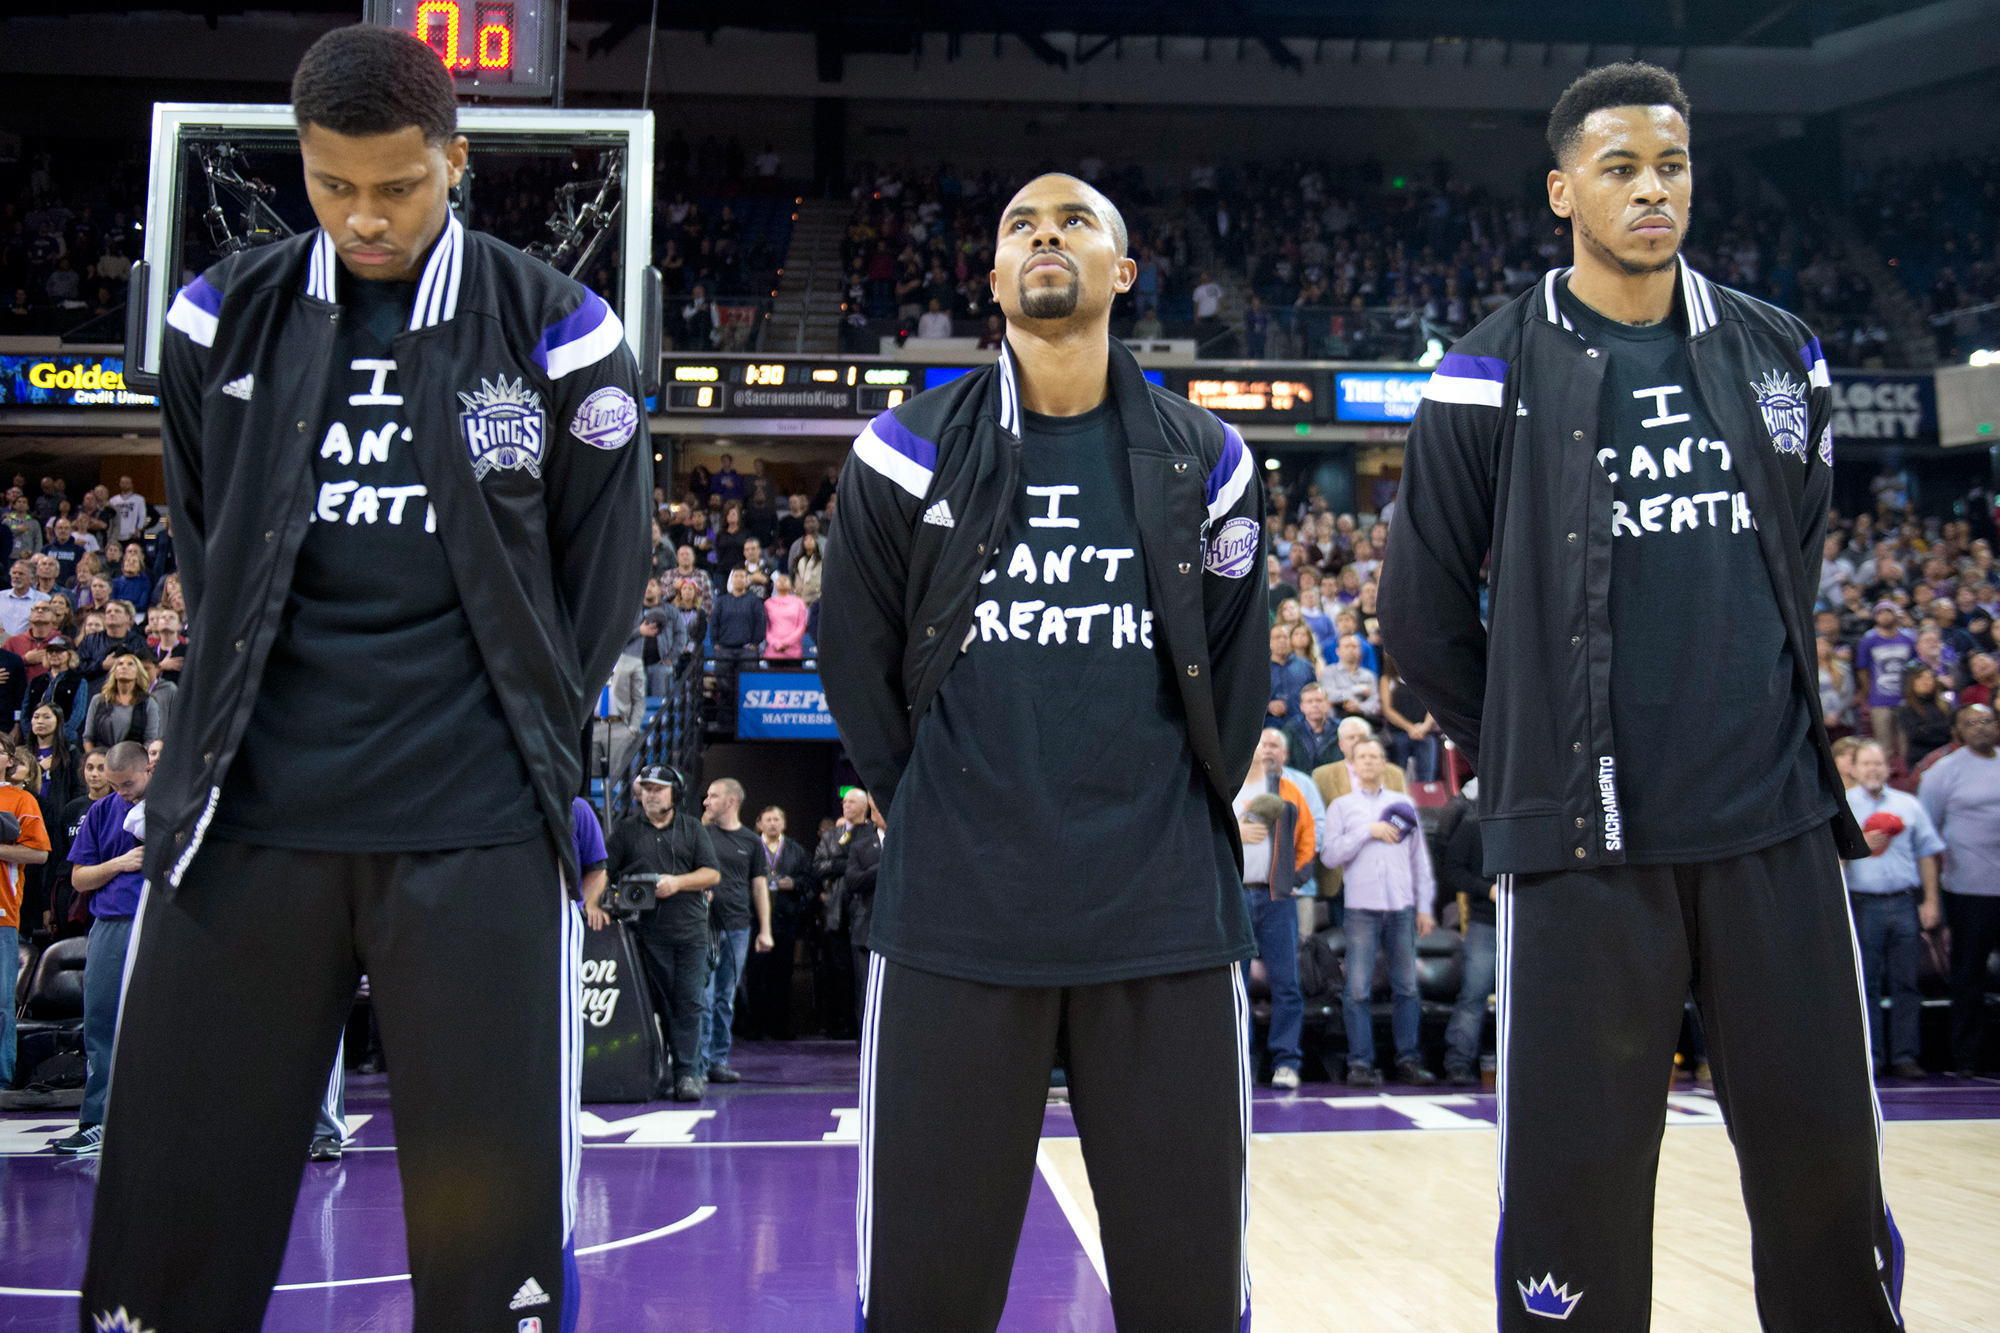 "The Sacramento Kings', from left, Rudy Gay, Ramon Sessions and Eric Moreland wear shirts that read ""I can't breathe"" in memory of Eric Garner during the national anthem before the game against the Houston Rockets on Thursday, Dec. 11, 2014, at Sleep Train Arena in Sacramento, Calif."